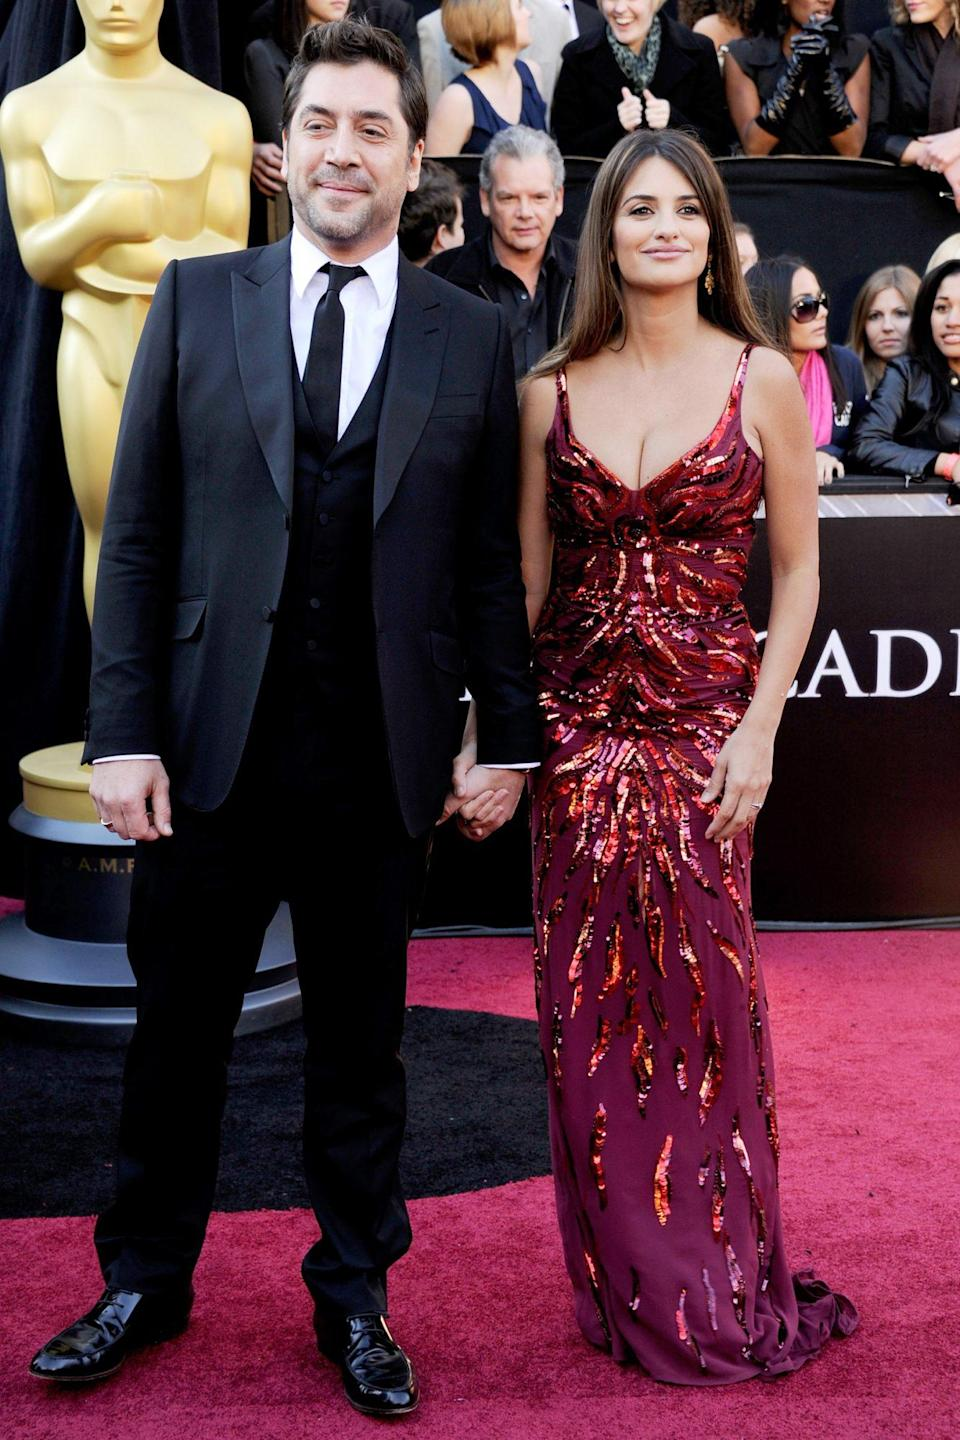 """<p>Javier Bardem and Penélope Cruz <a href=""""https://people.com/awards/oscar-red-carpet-2011-javier-bardem-and-penelope-cruz/"""" rel=""""nofollow noopener"""" target=""""_blank"""" data-ylk=""""slk:hit the red carpet for the first time"""" class=""""link rapid-noclick-resp"""">hit the red carpet for the first time</a> since welcoming their son in January of that year. </p>"""